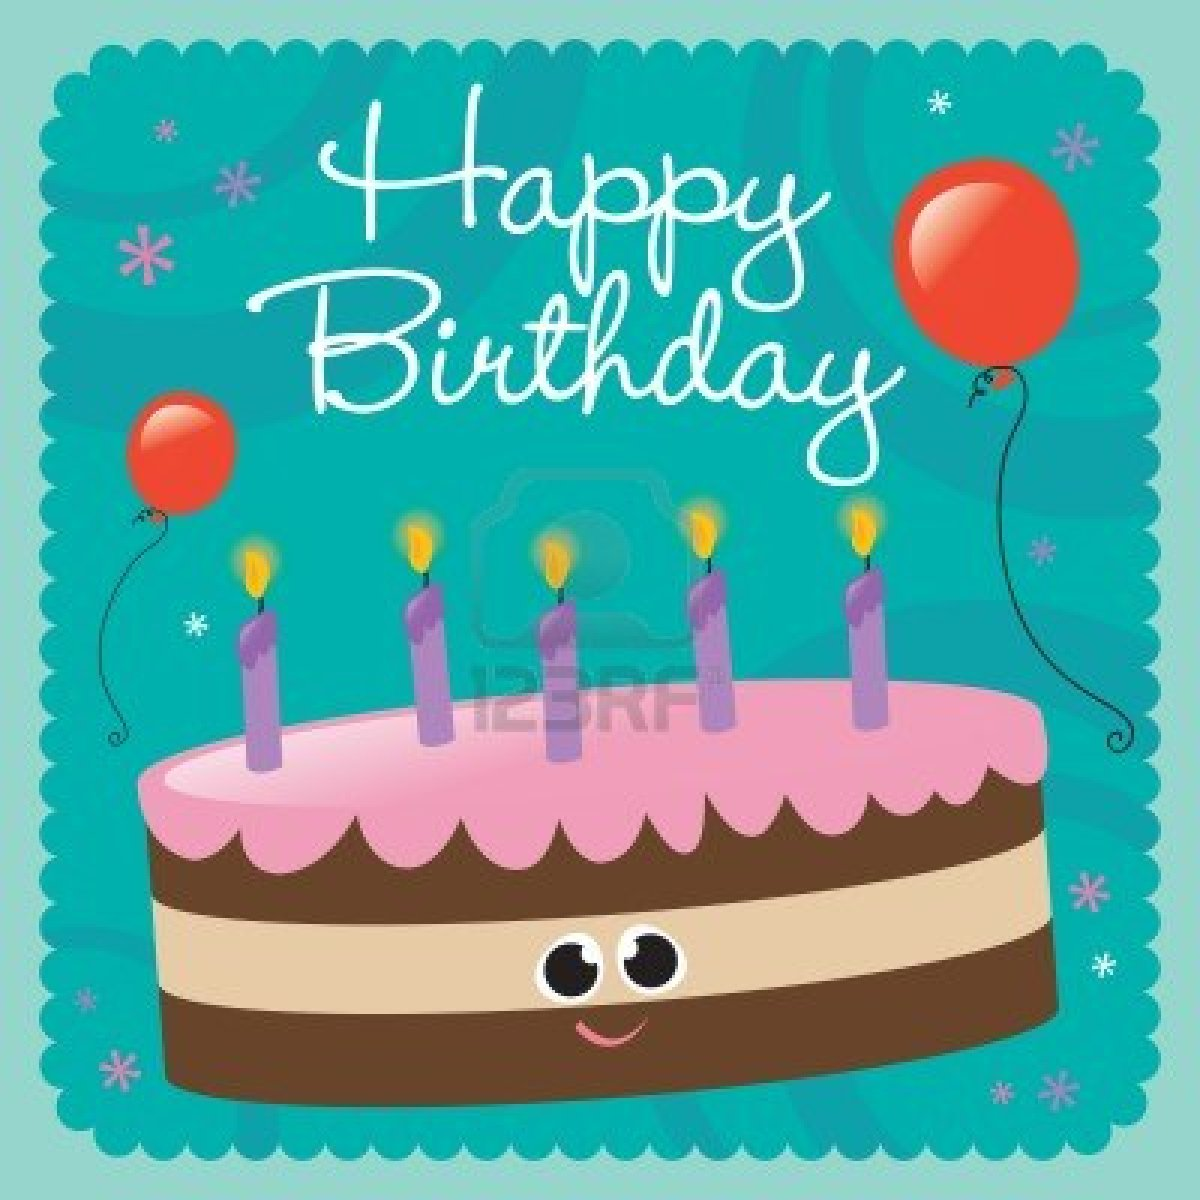 Happy Birthday Cards 3 Card HappyBirthdayCard6 HappyBirthdayCard10